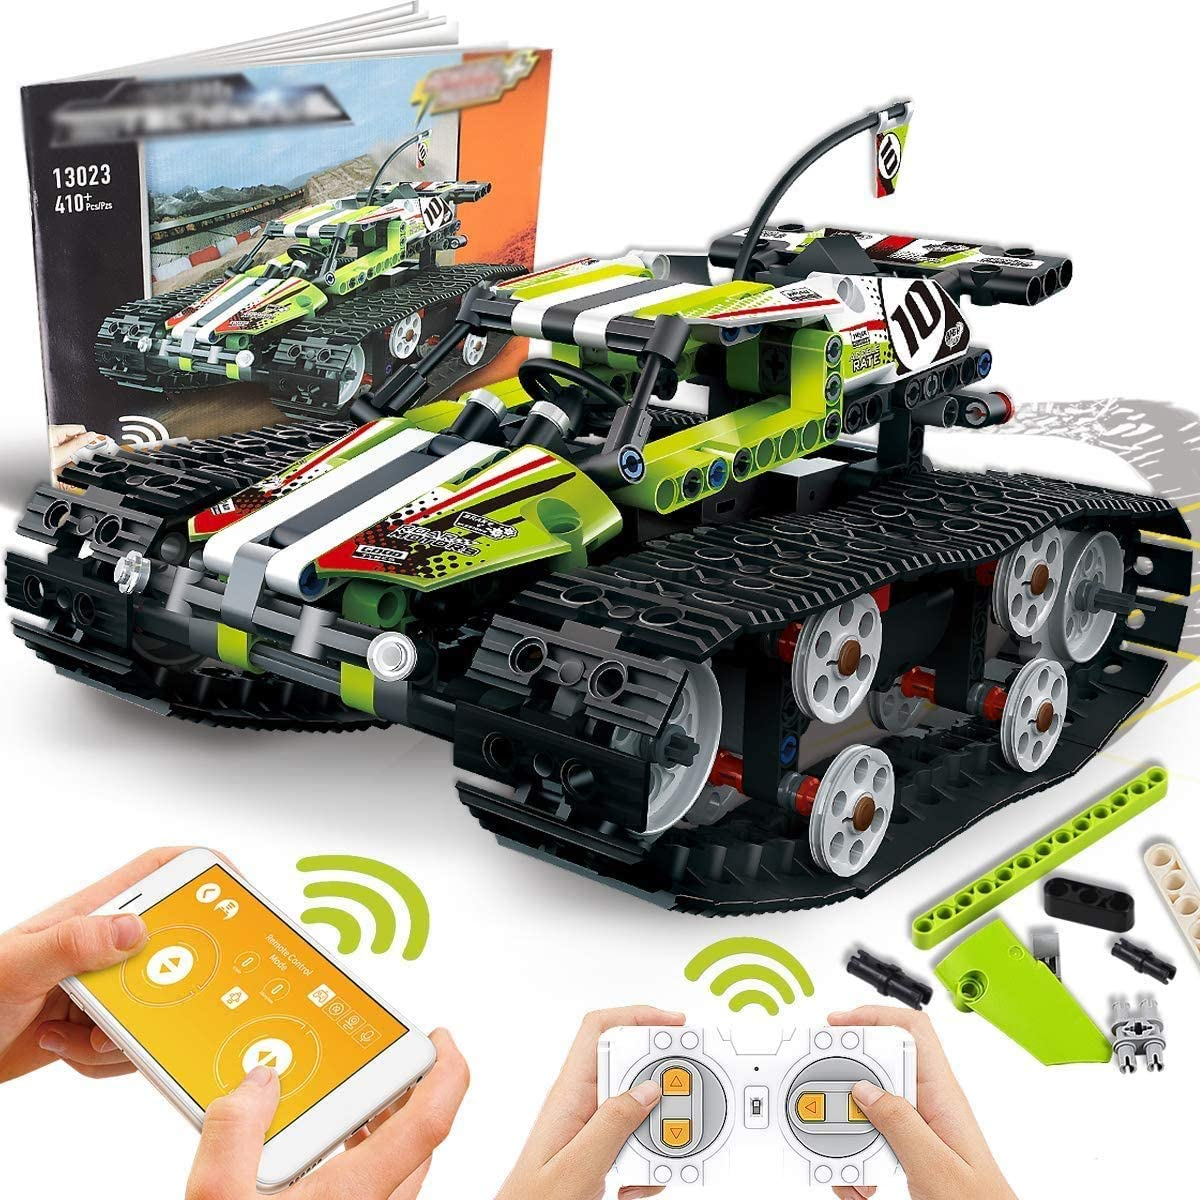 CYZMONI Building Blocks Boy Remote Control Car, Blocks Remote Control Racing Building Kit, Educational Learning Toys, Science Toys, Suitable for Children Aged 6-14